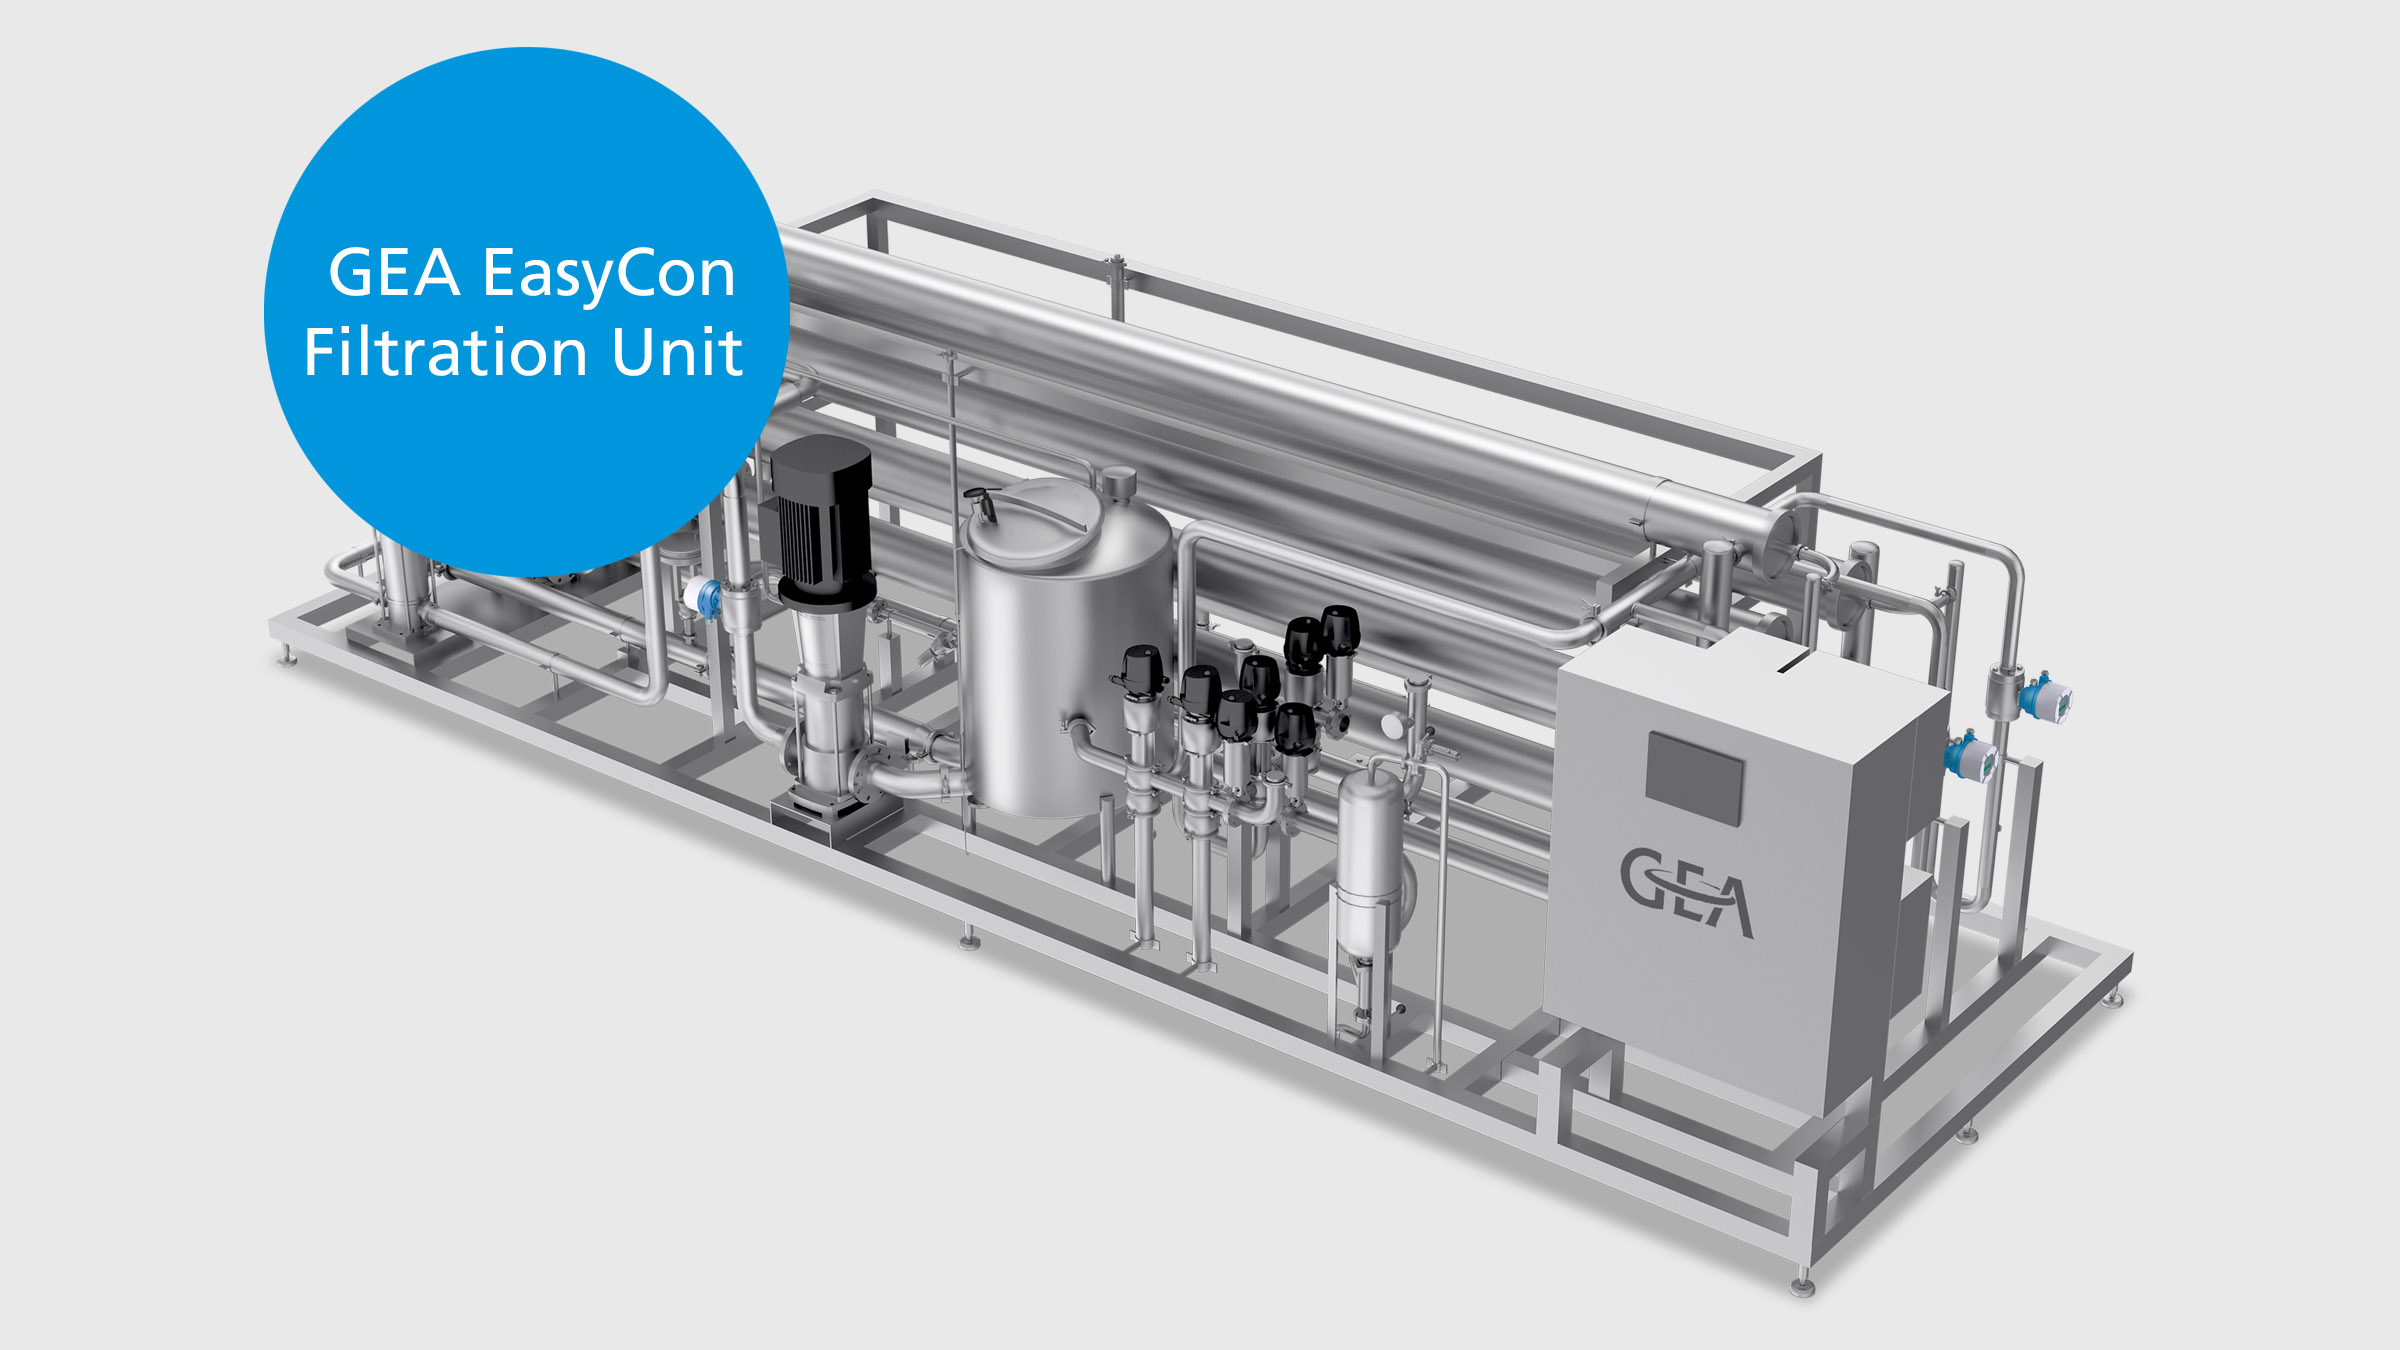 GEA EasyCon Filtration Unit